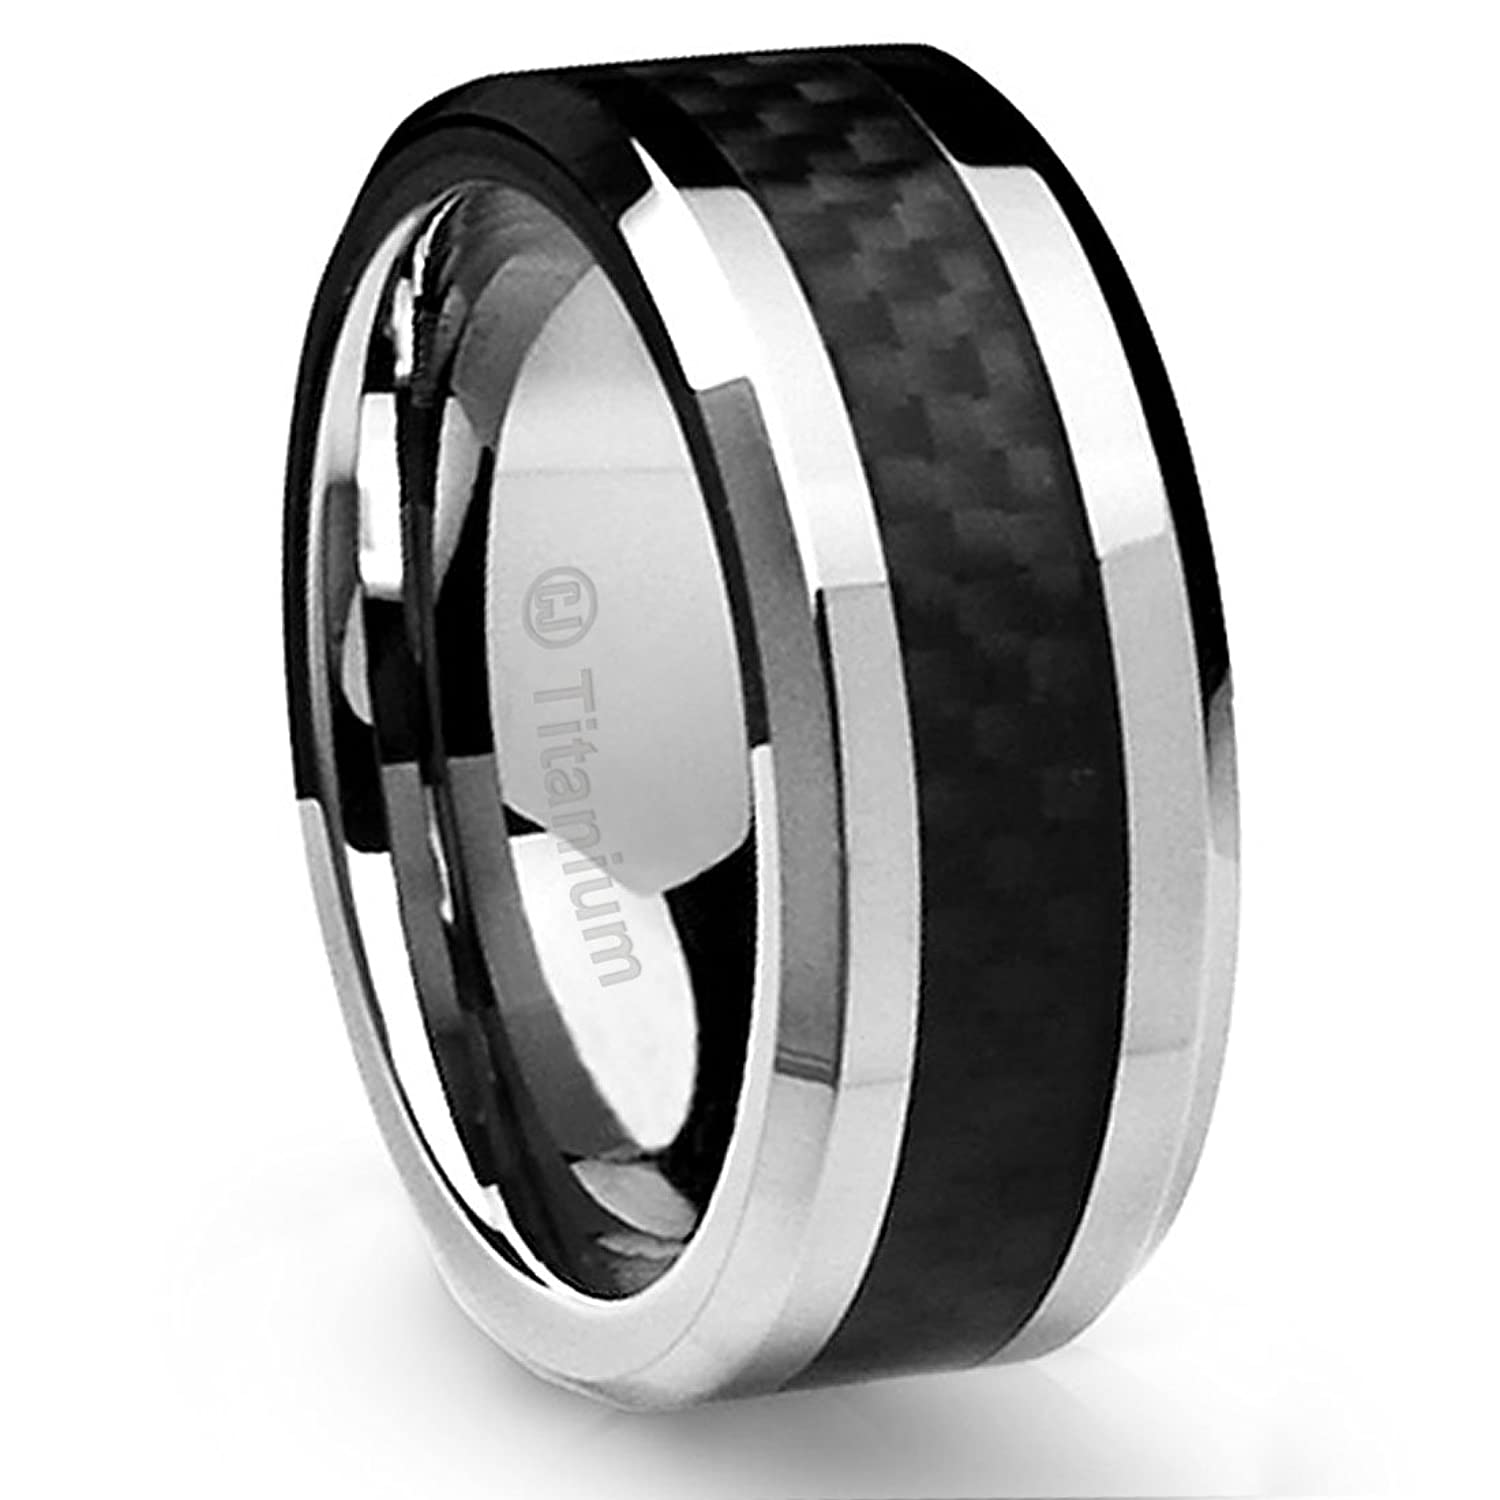 bands mens wedding rings black men northernroyal collections band carbon for with fiber silver titanium inlay